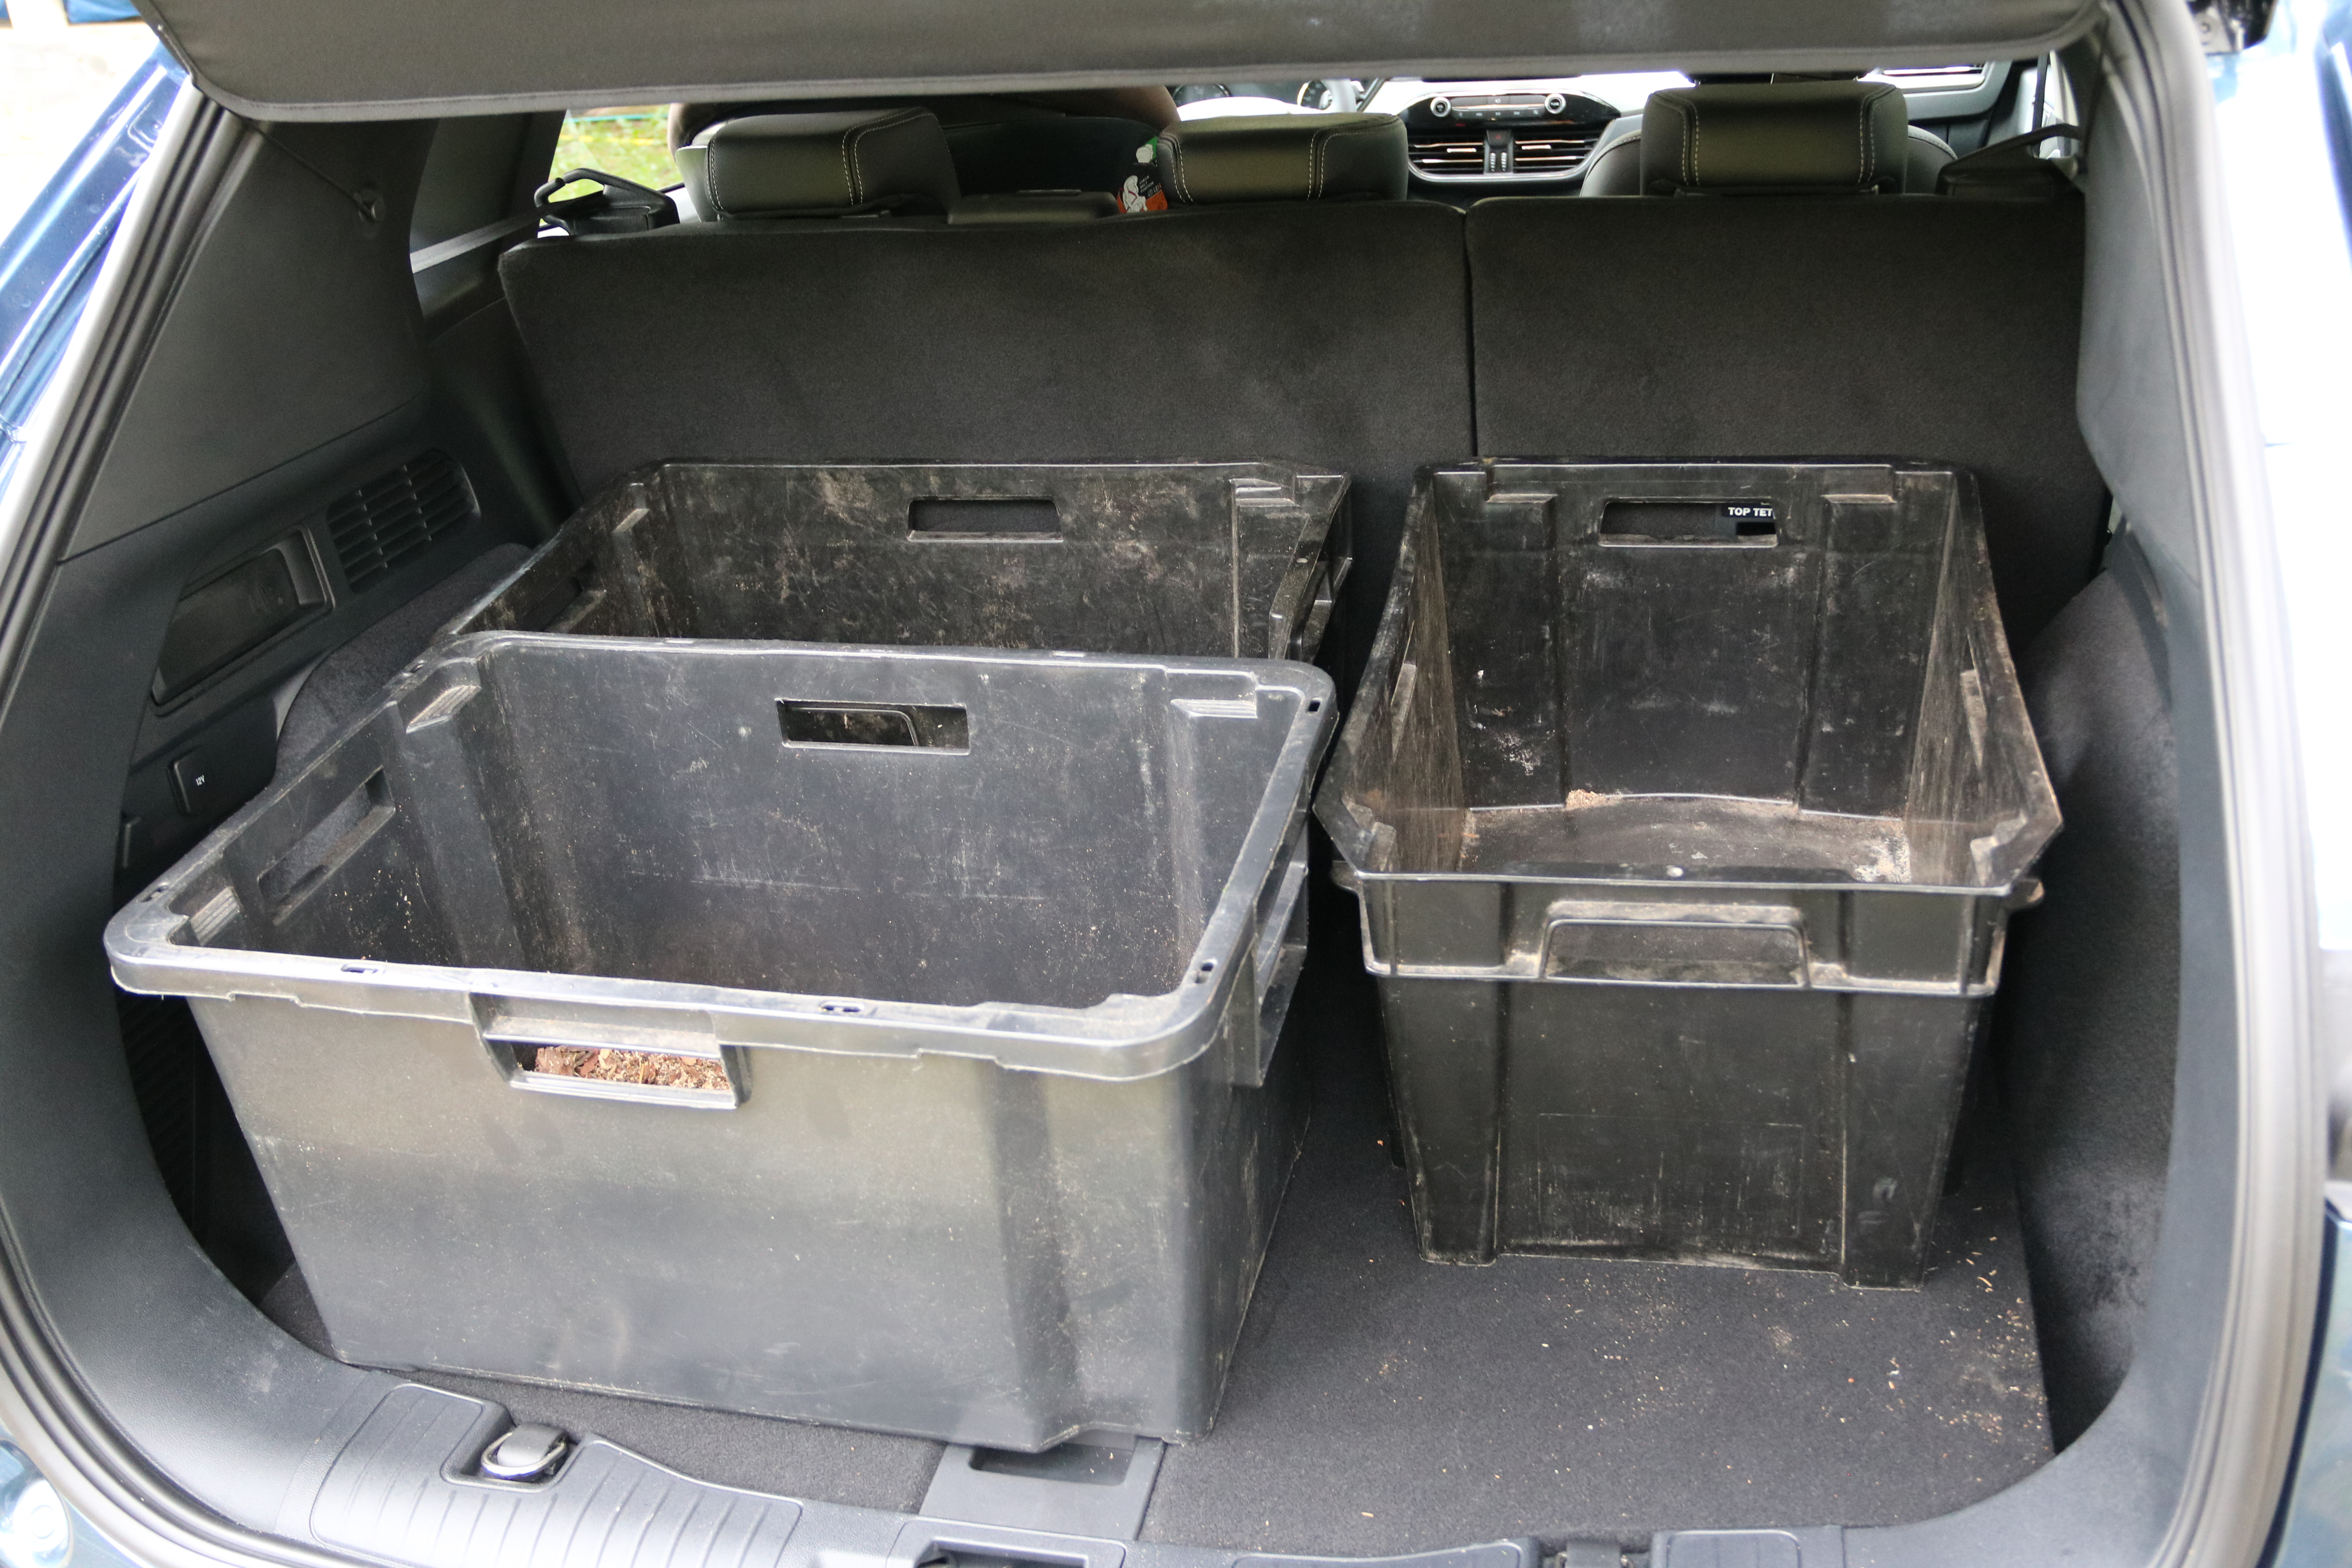 Ford Kuga PHEV trunk filled with three plastic bins